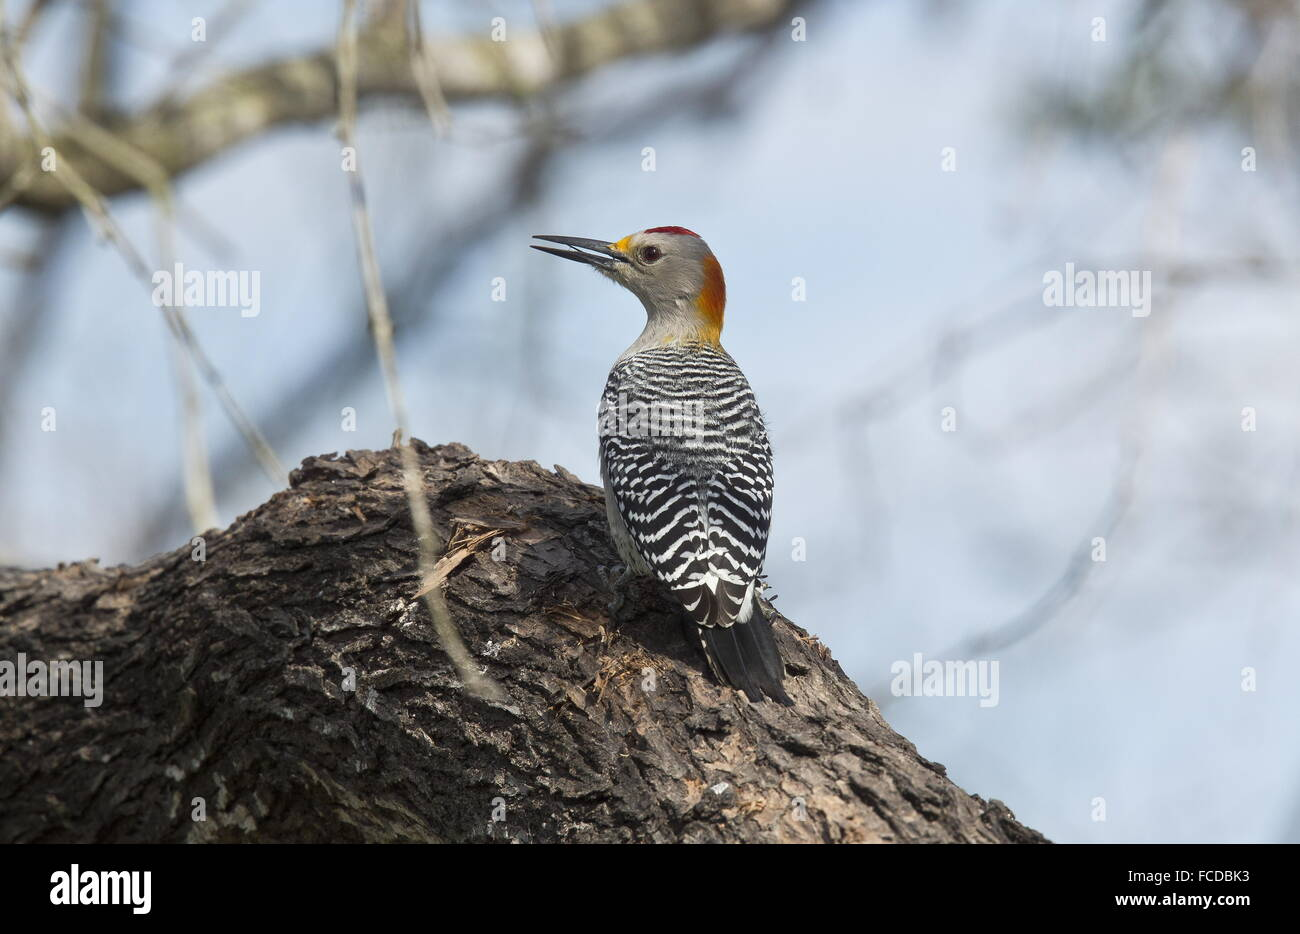 Golden-fronted Woodpecker, Melanerpes aurifrons - male on dead branch. Rio Grande, Texas. Stock Photo